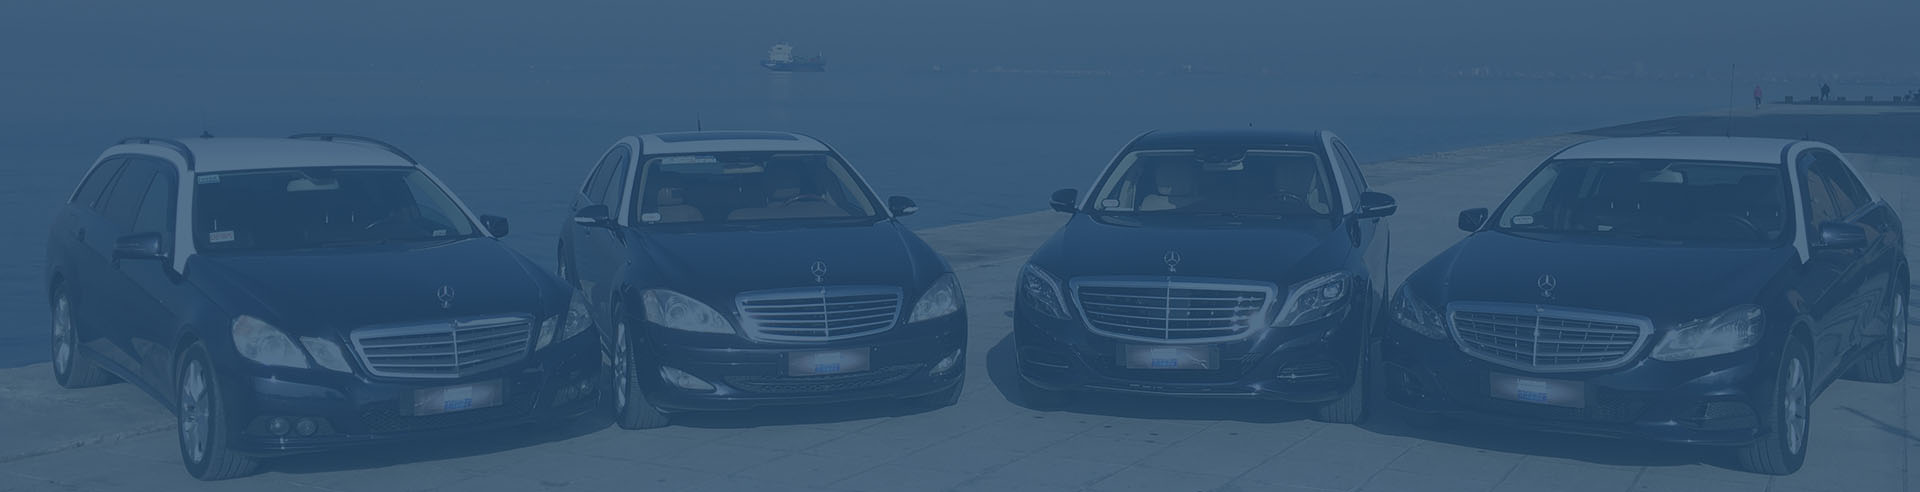 Prices - Limousine Taxi Services Thessaloniki